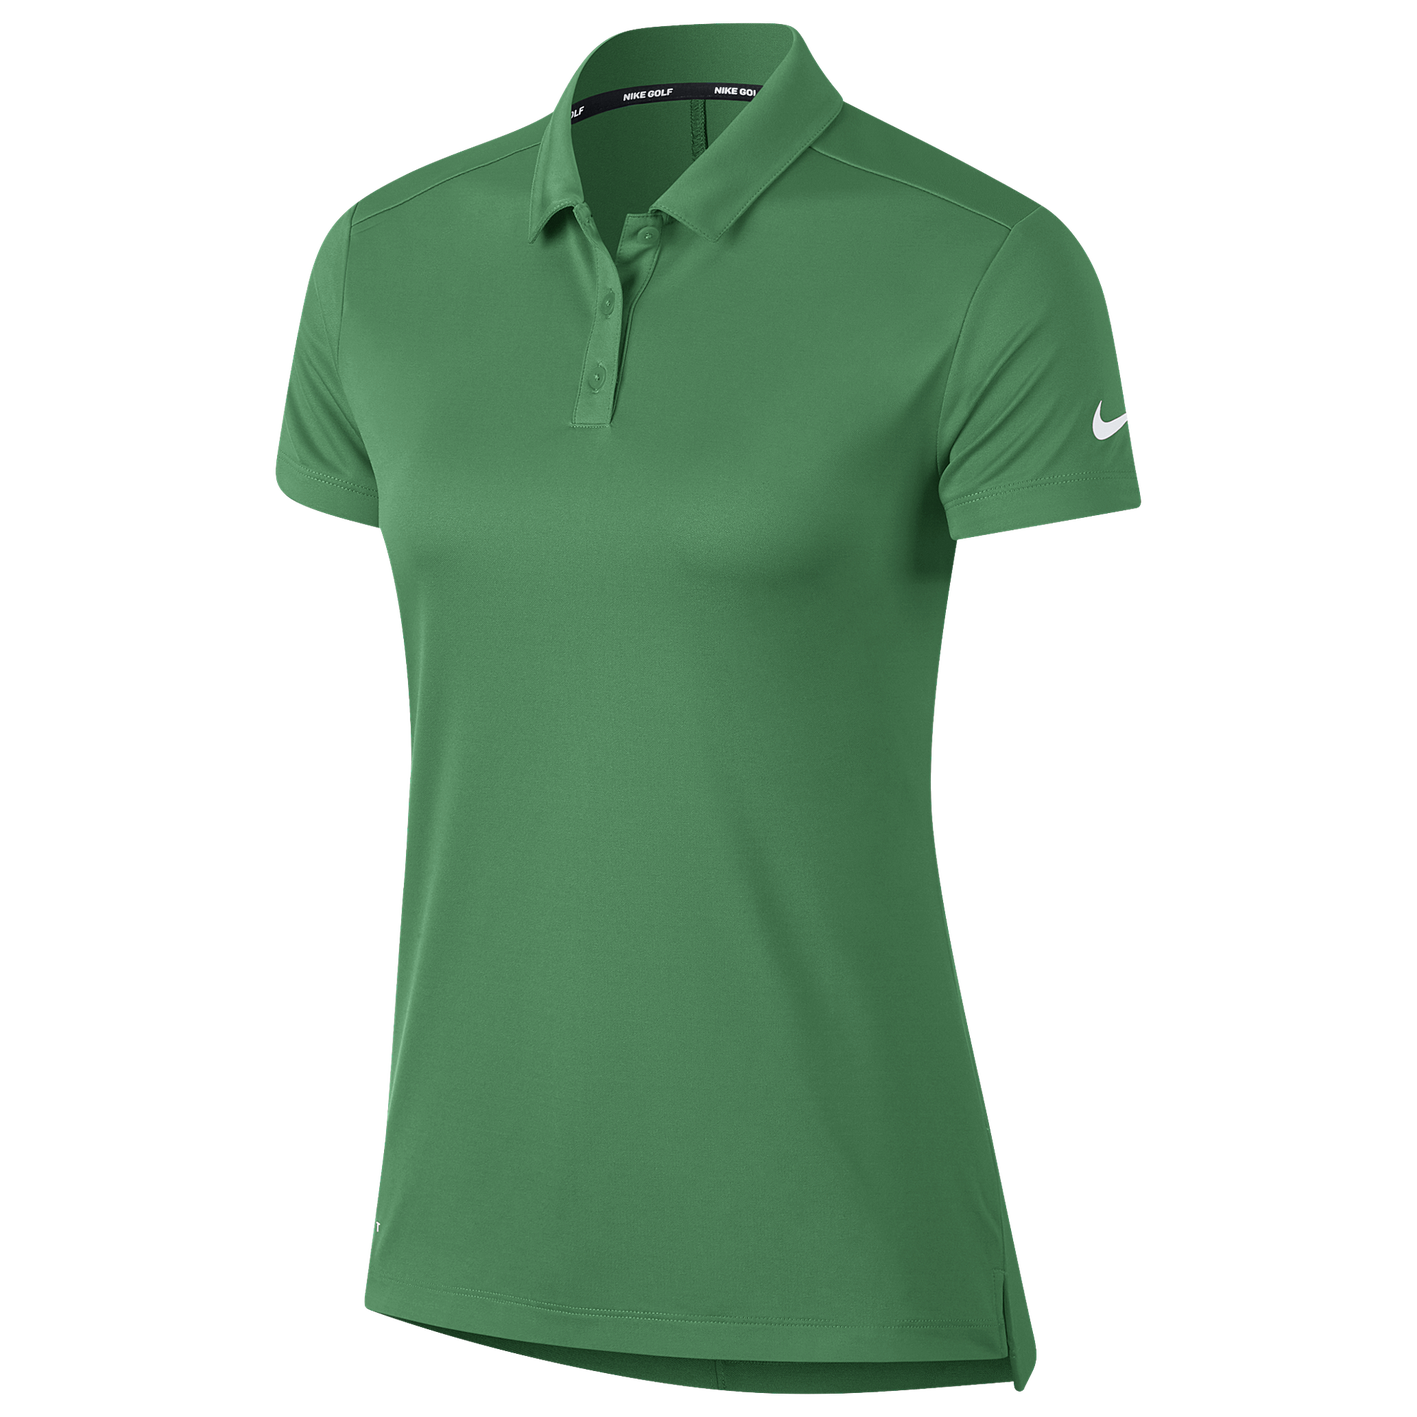 0ffa593a Nike Dri-Fit Victory Golf Polo - Women's - Golf - Clothing - Classic ...